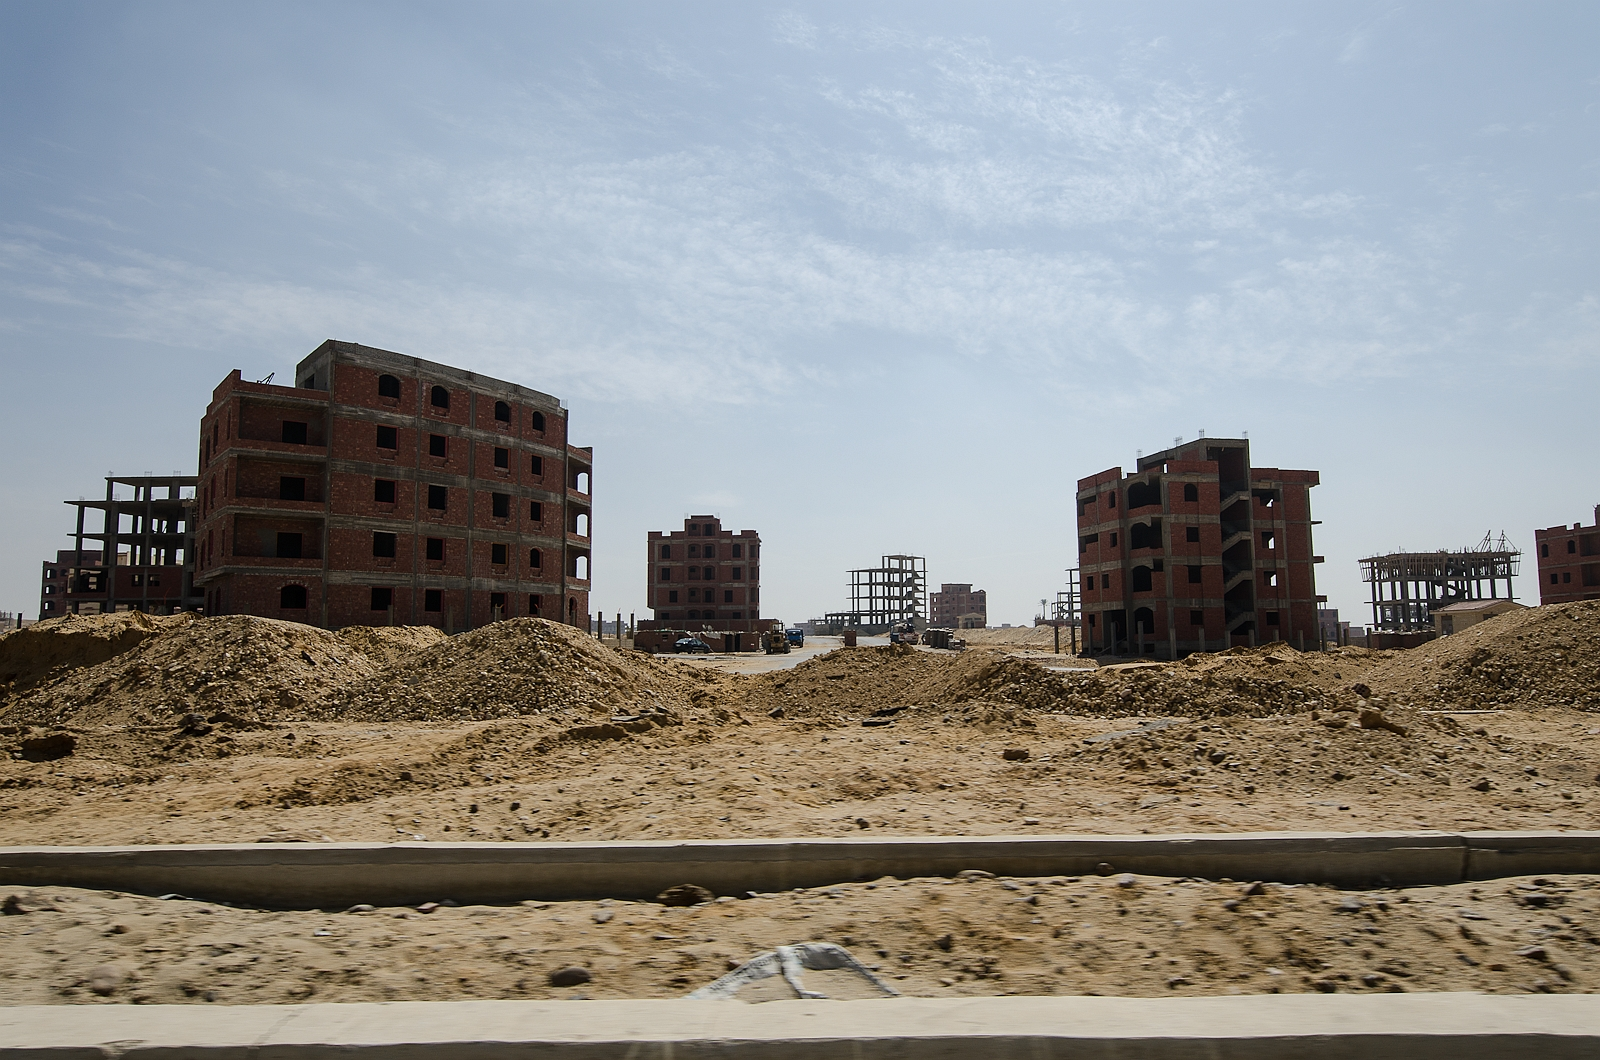 Cairo New Towns – From Desert Cities to Deserted Cities